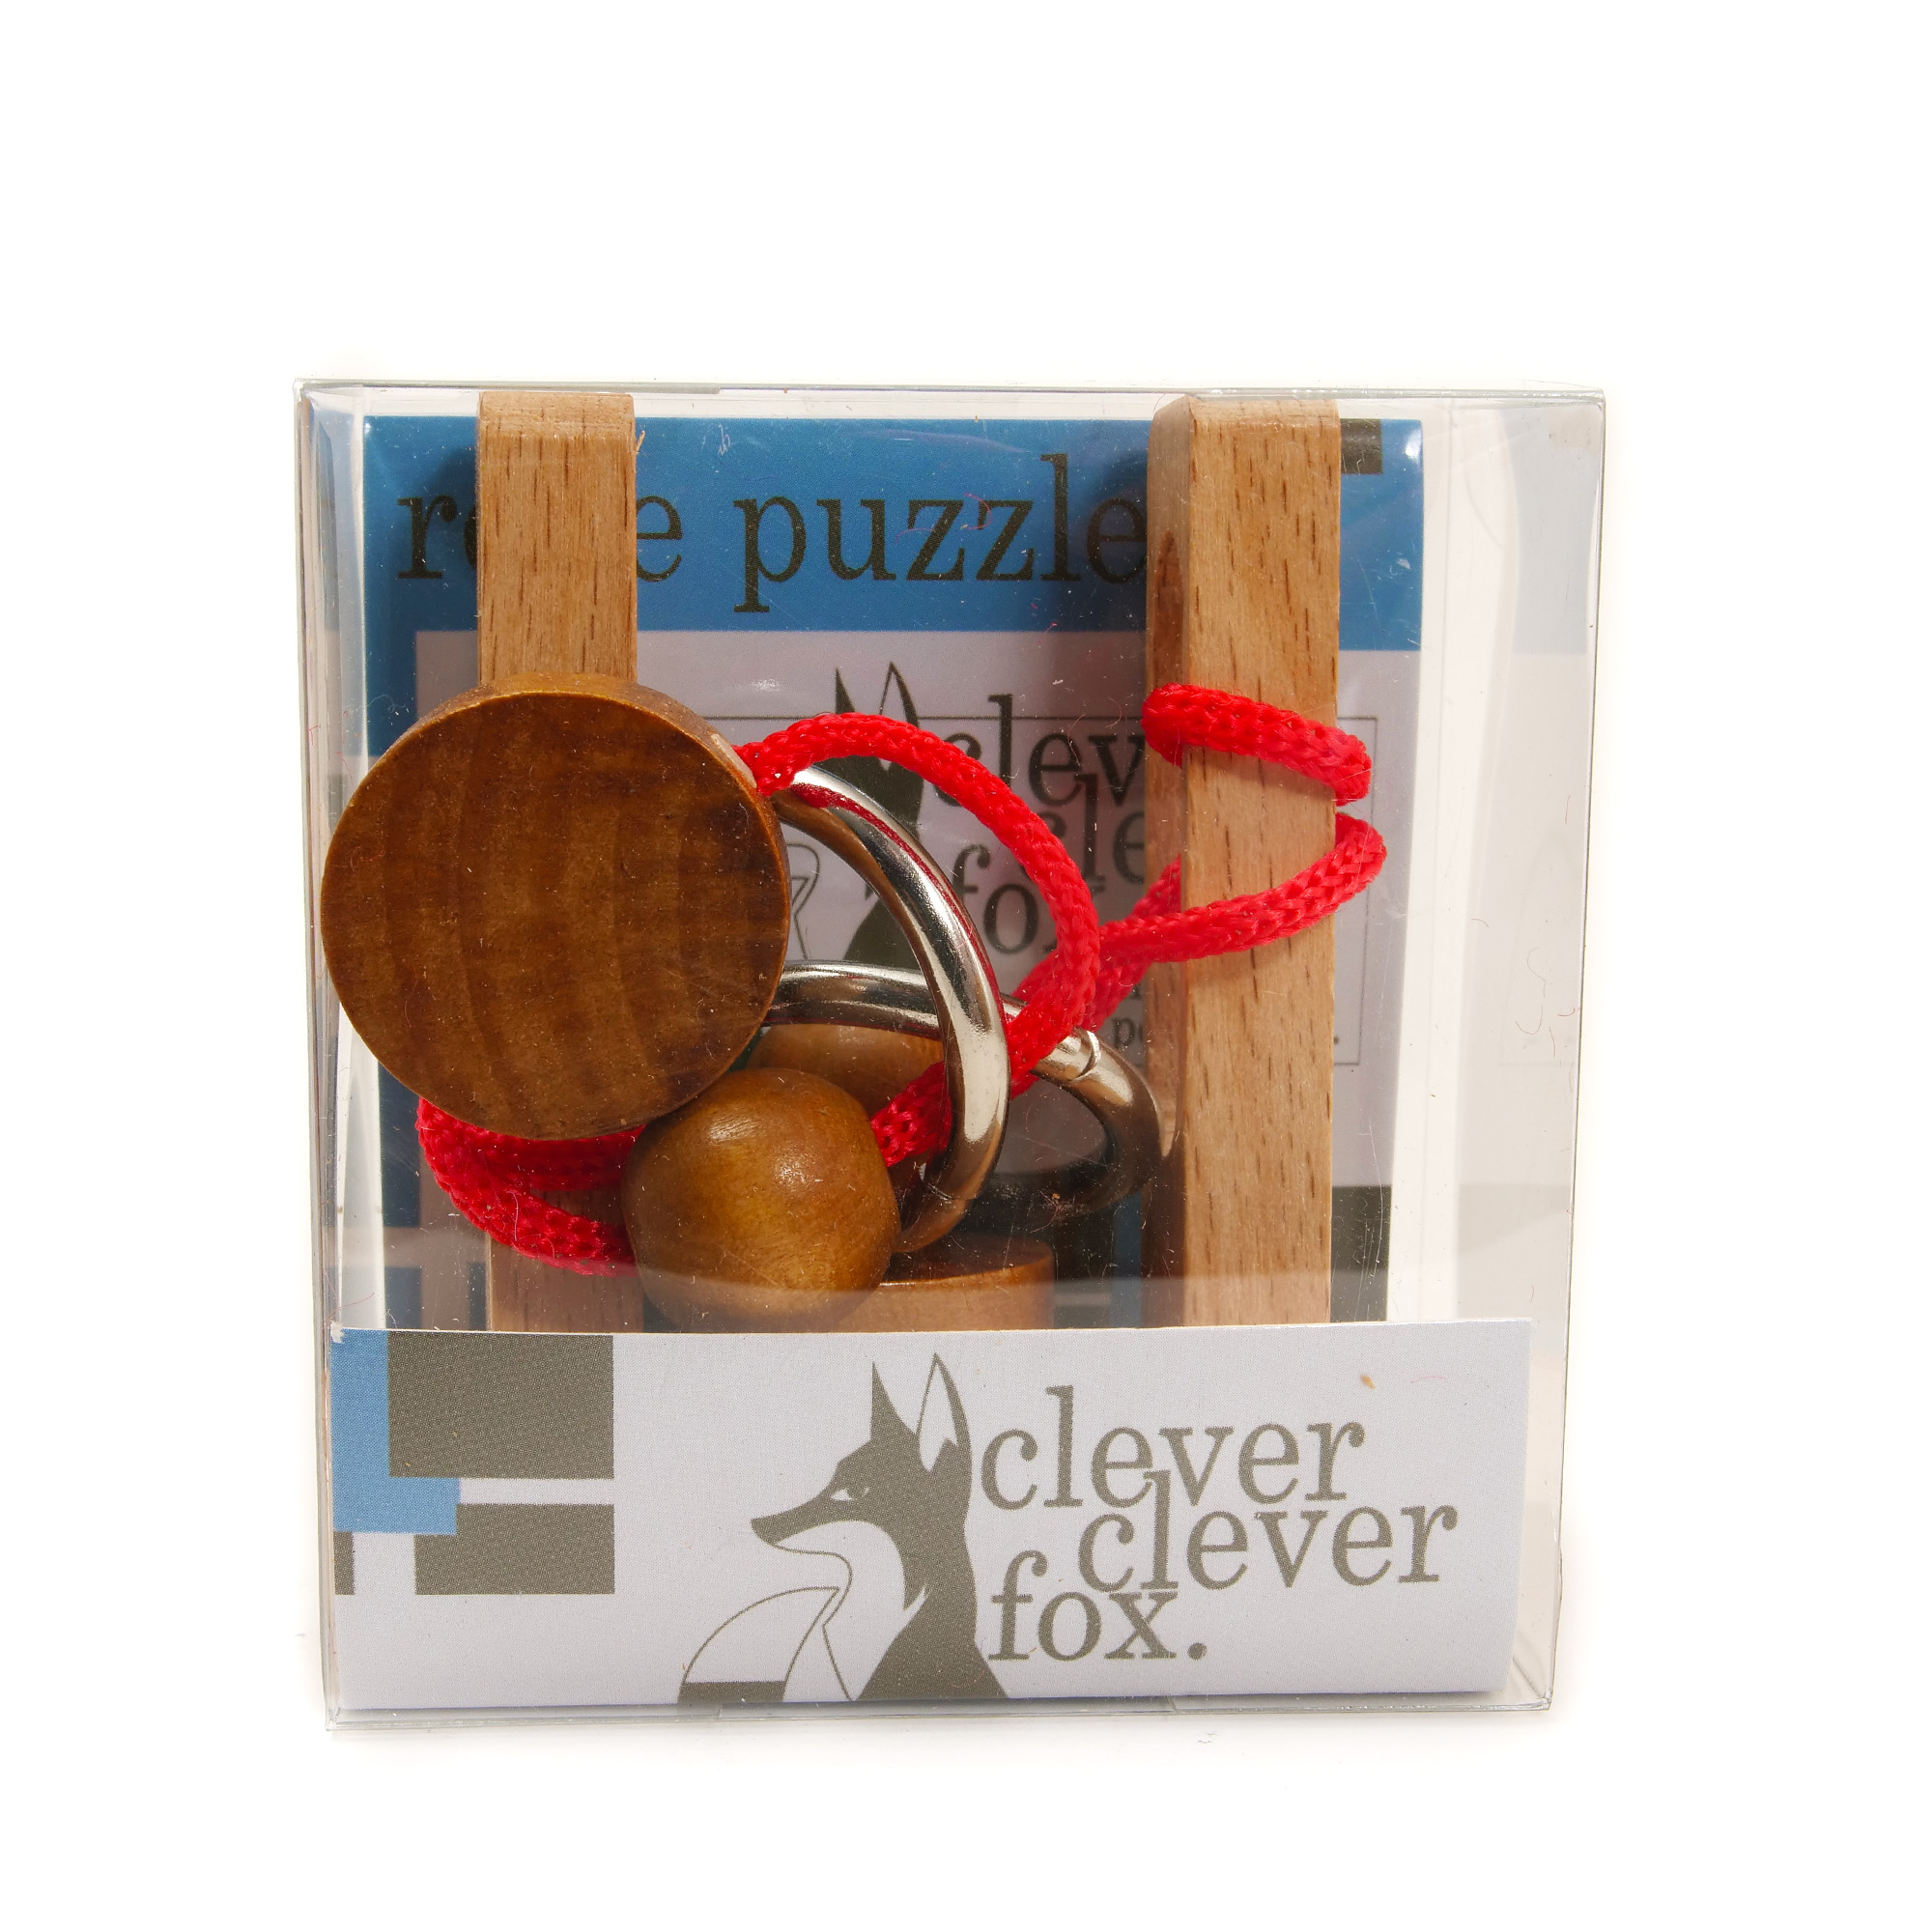 Clever Fox: Clever Fox Rope Puzzle Solution - Red